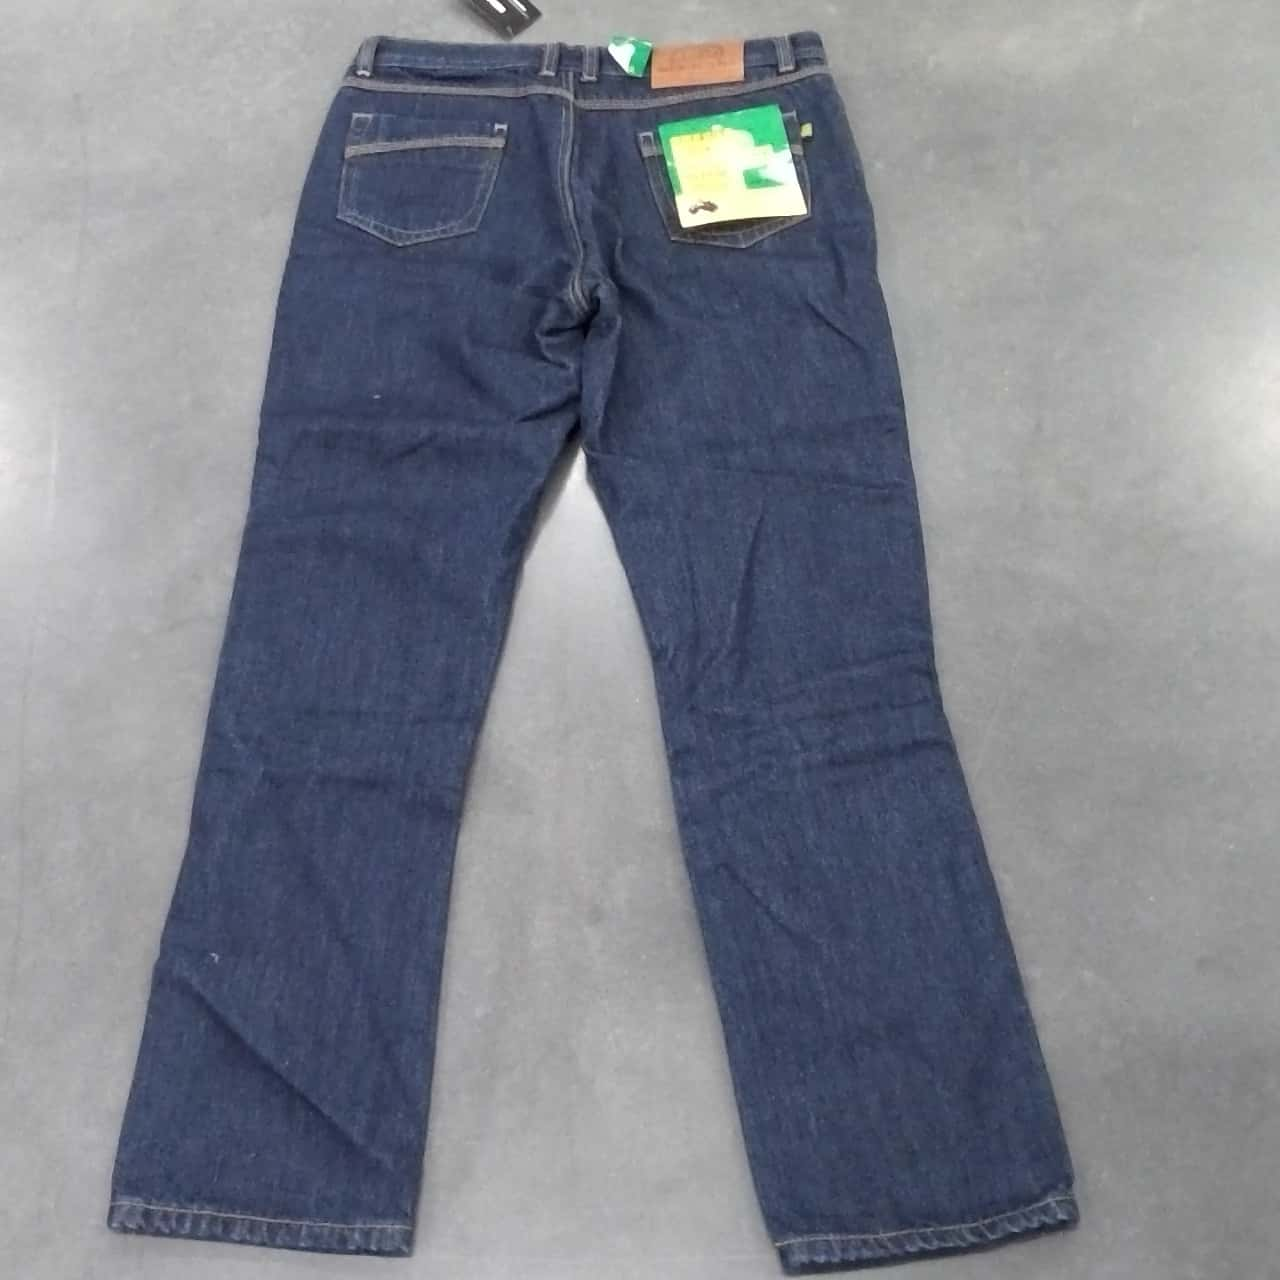 BNWT Womens NEO JEANS Size 10 Bootcut Jeans Blue RRP $199.00